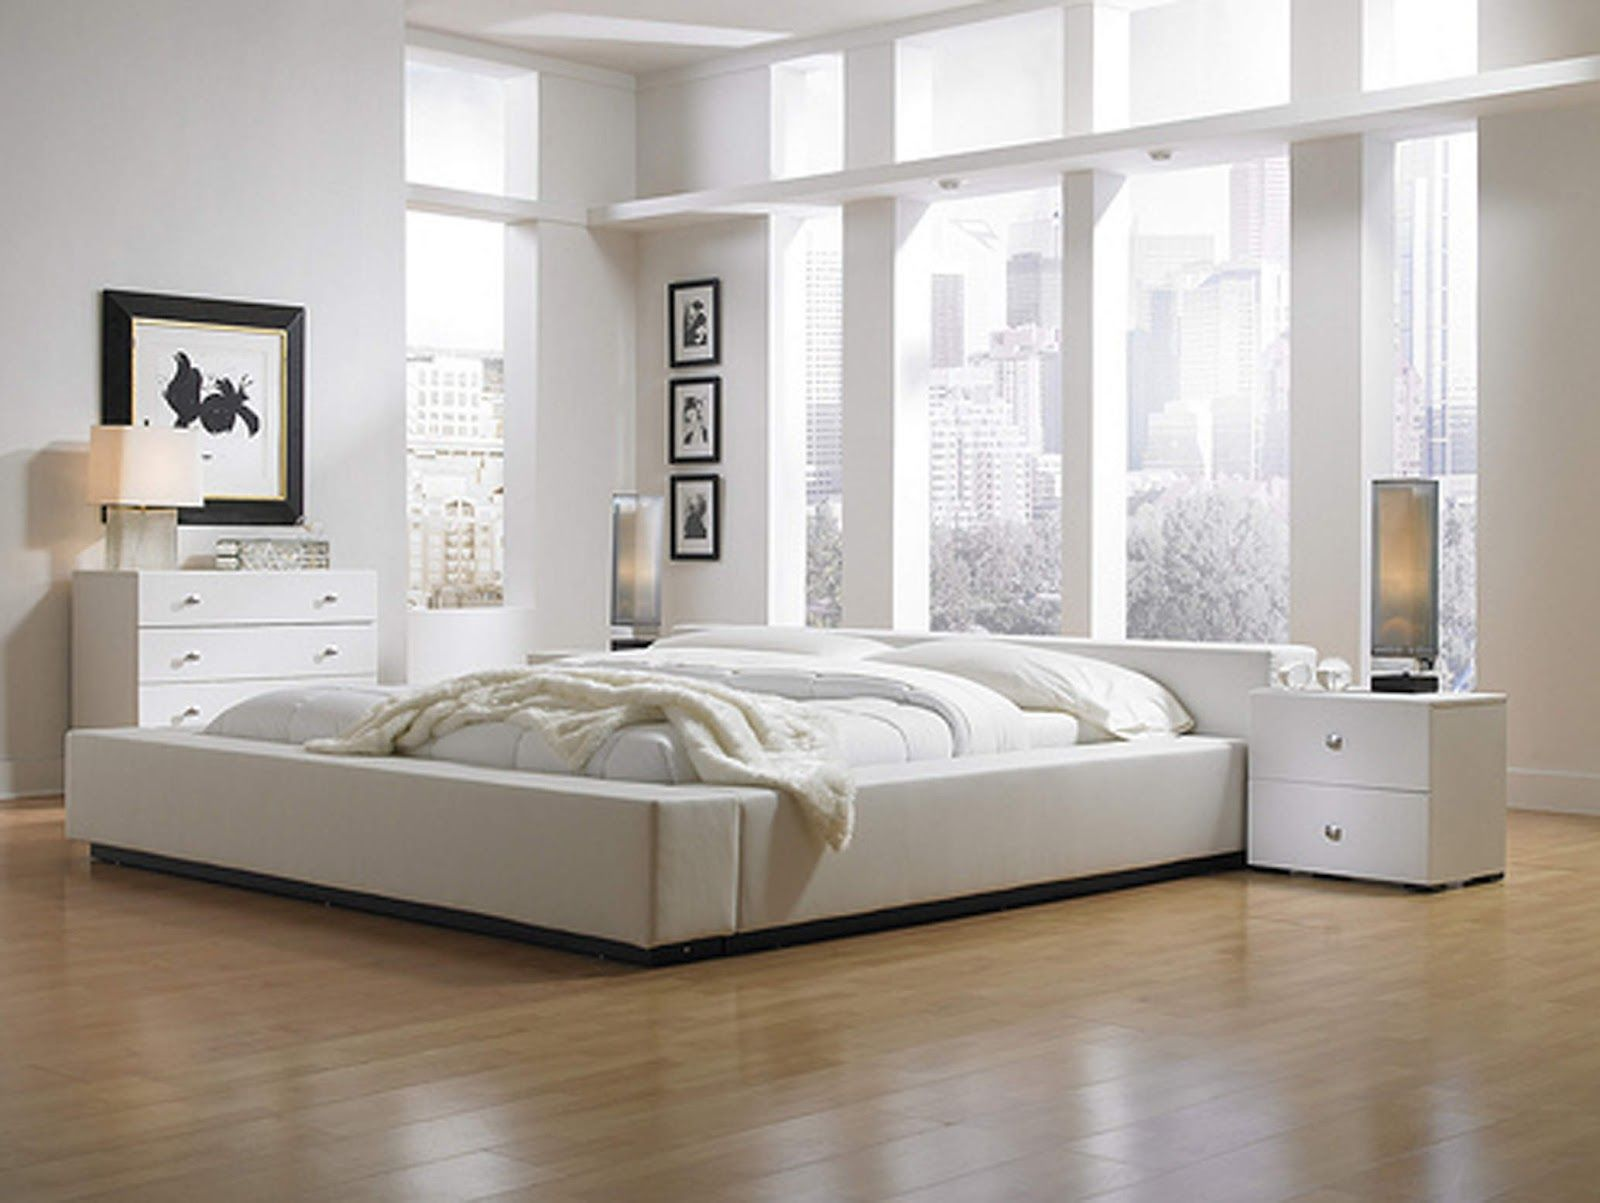 White Rooms white rooms - google search | city apartments | pinterest | white